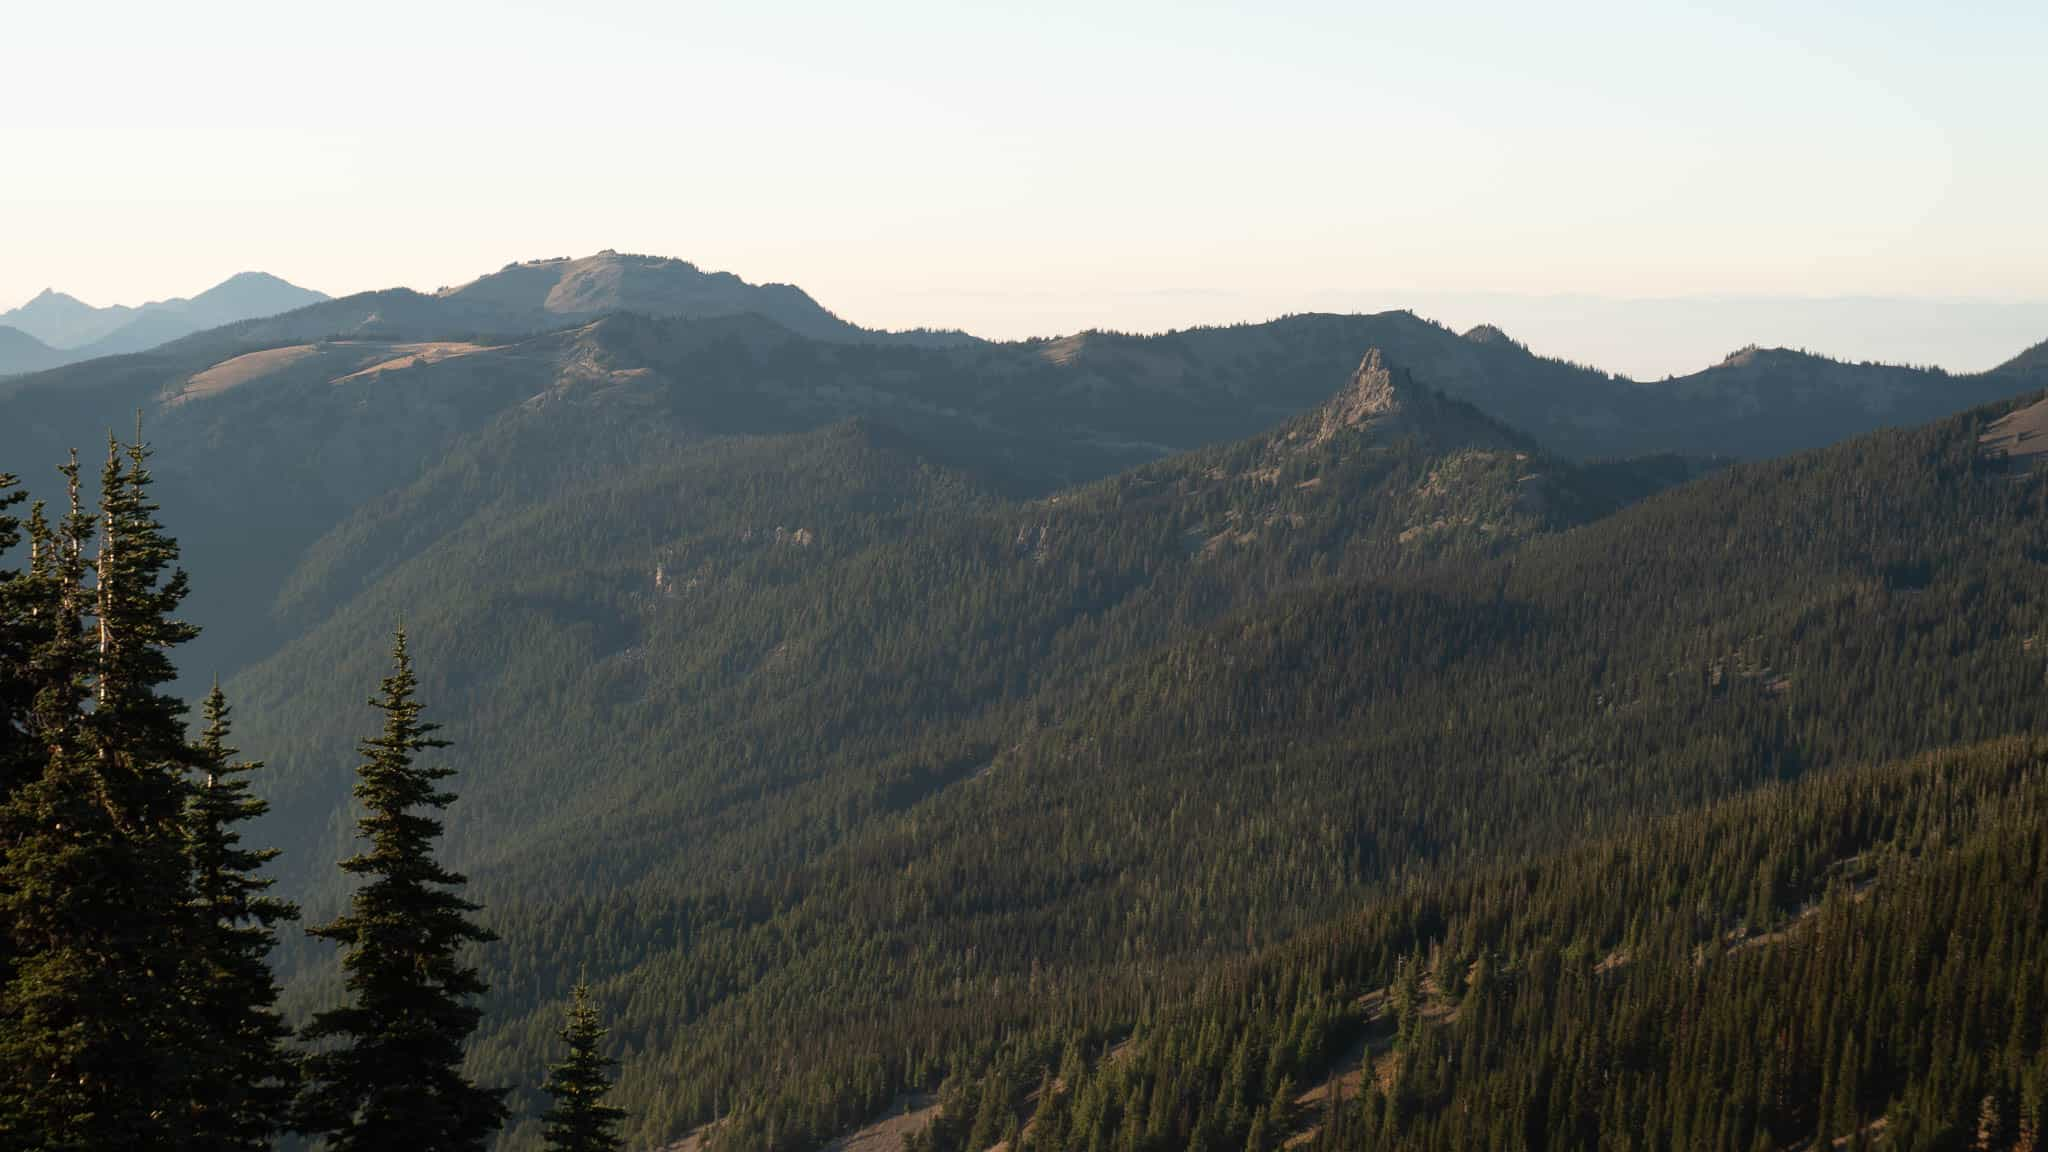 A view of Steeple Rock from across the valley. Hurricaine Ridge is in the background to the left.